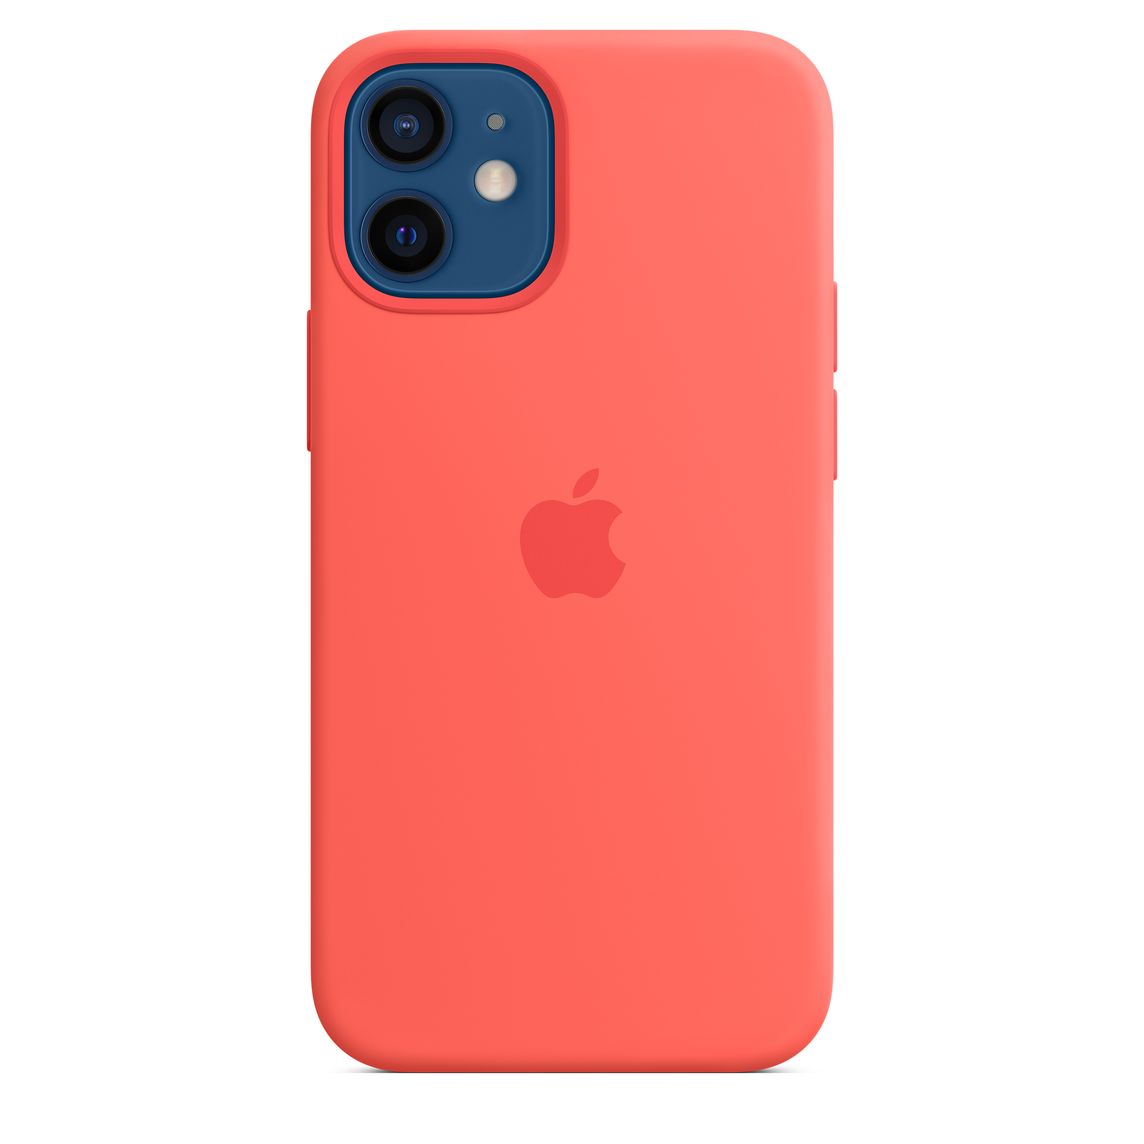 iPhone 12 mini Silicone Case with MagSafe - Pink Citrus ...